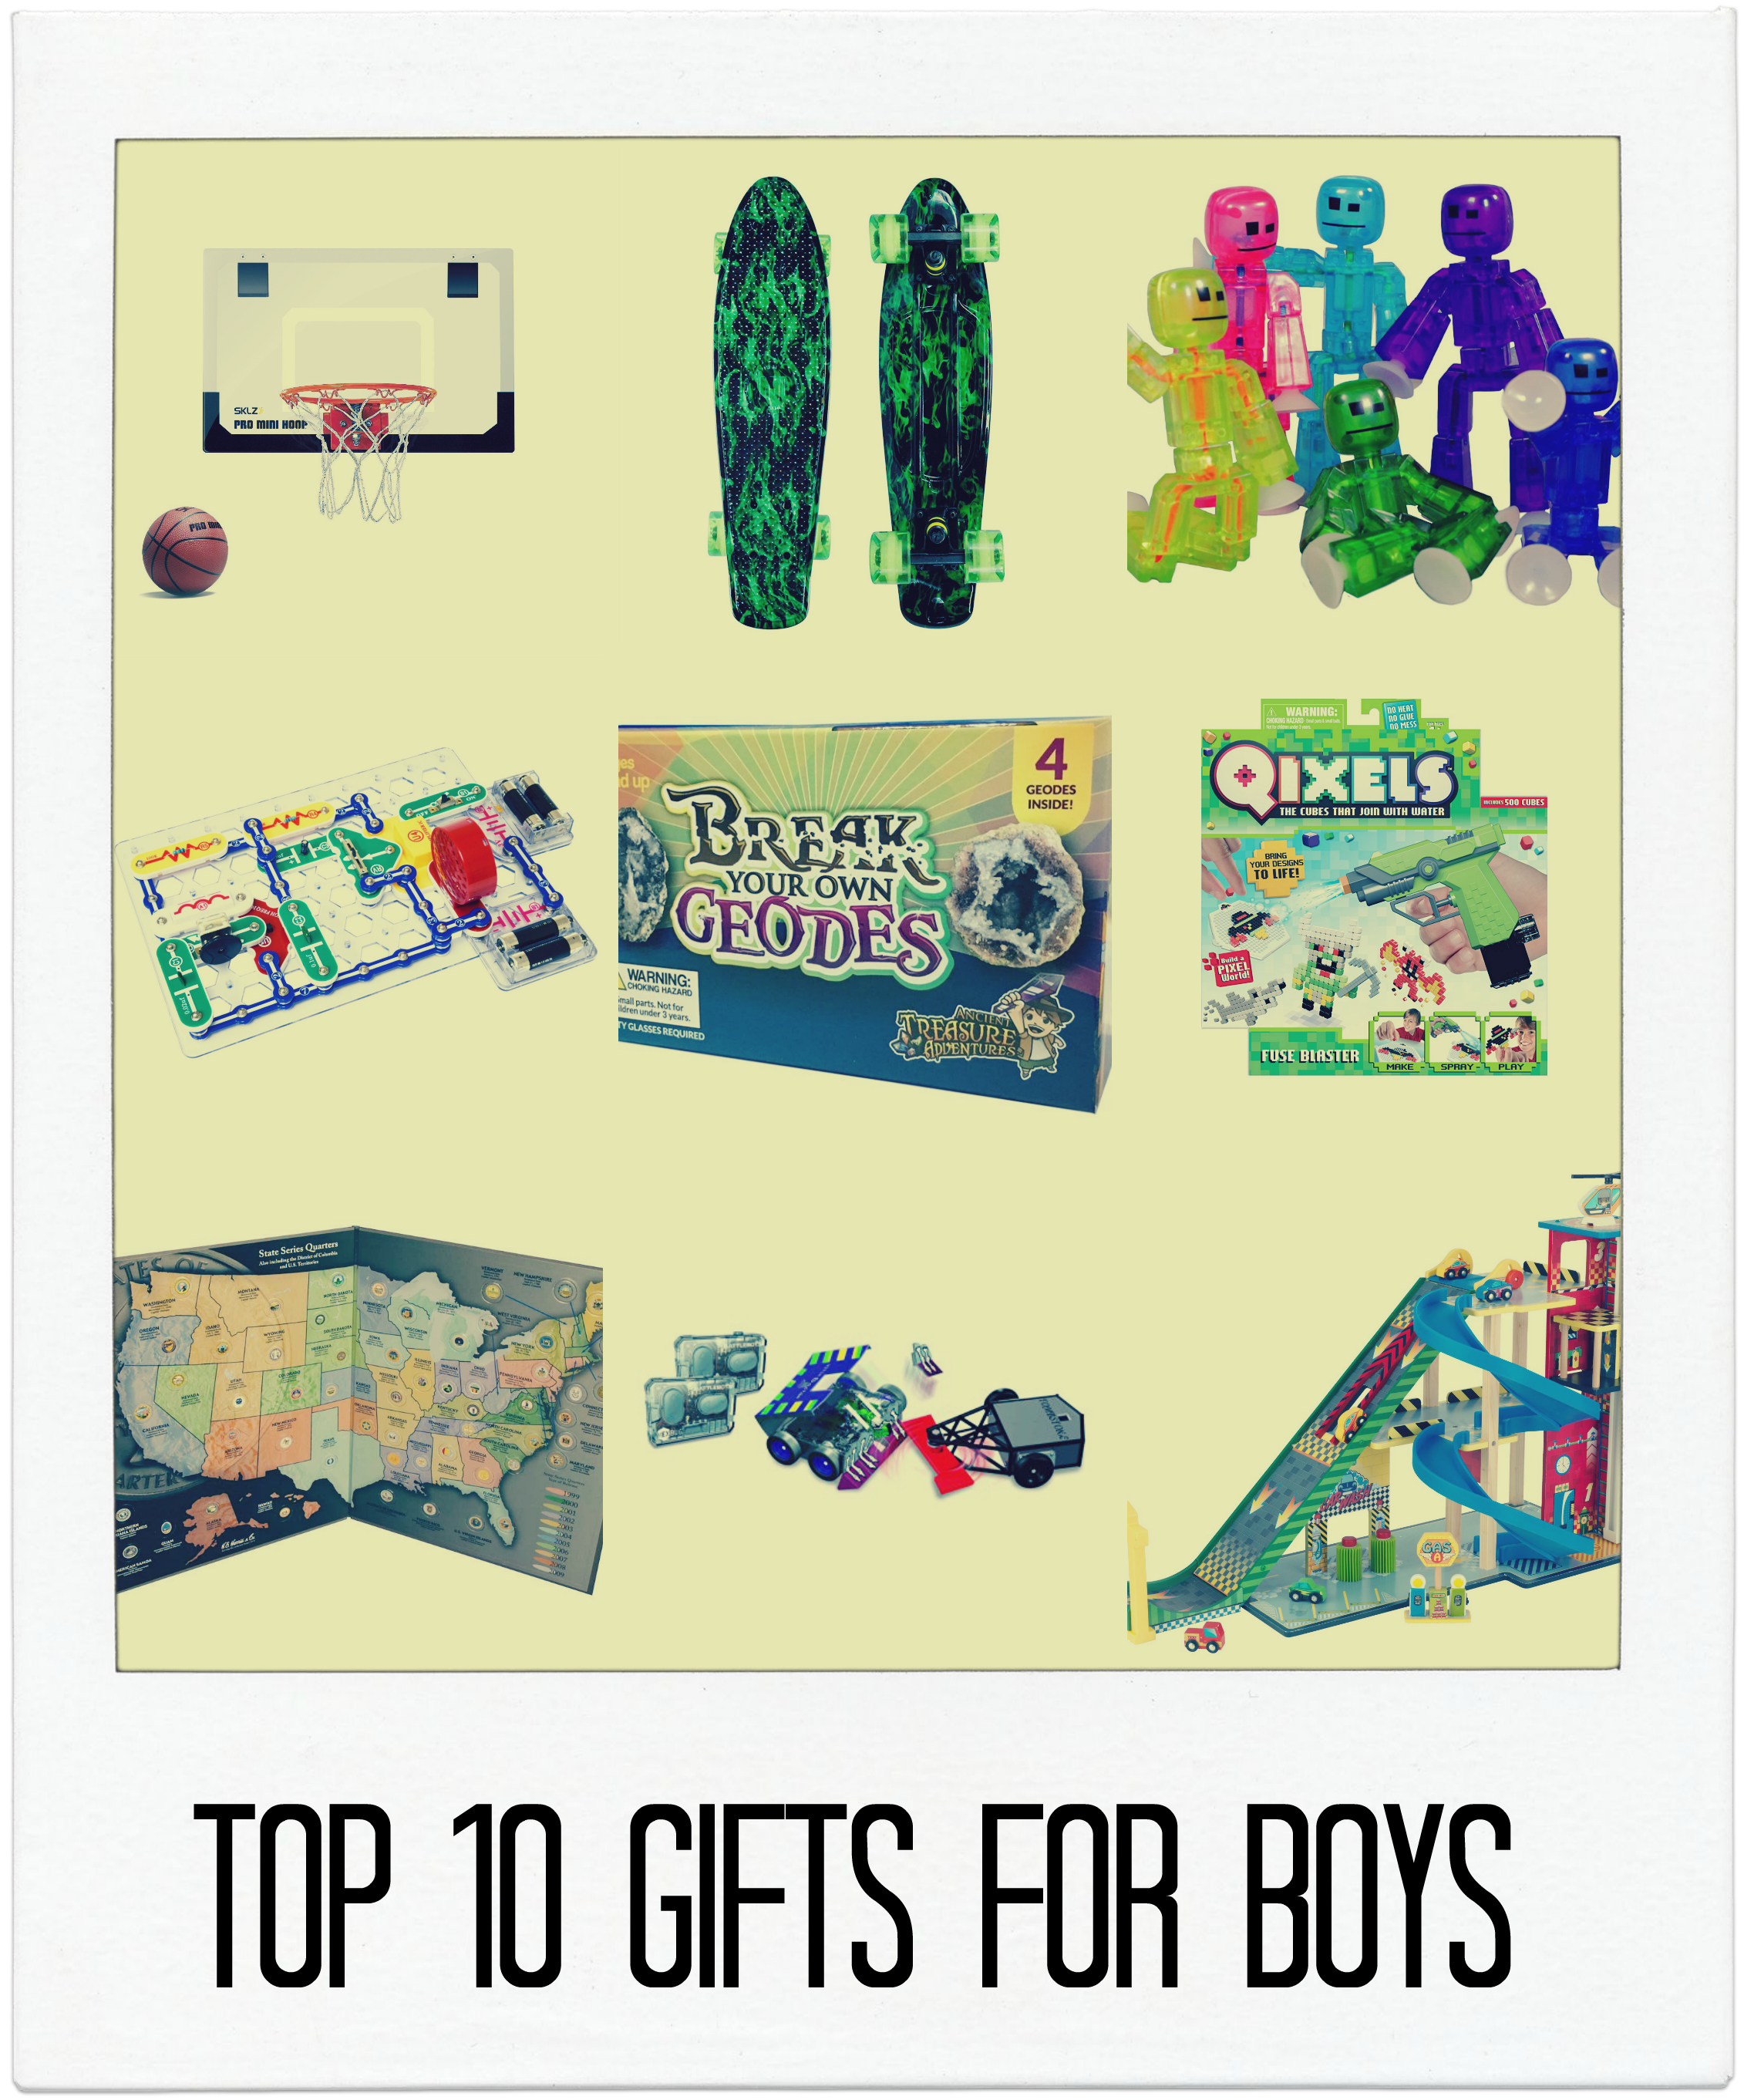 Top Ten Christmas Toys Boys : Top ten gifts for boys this christmas brooke romney writes